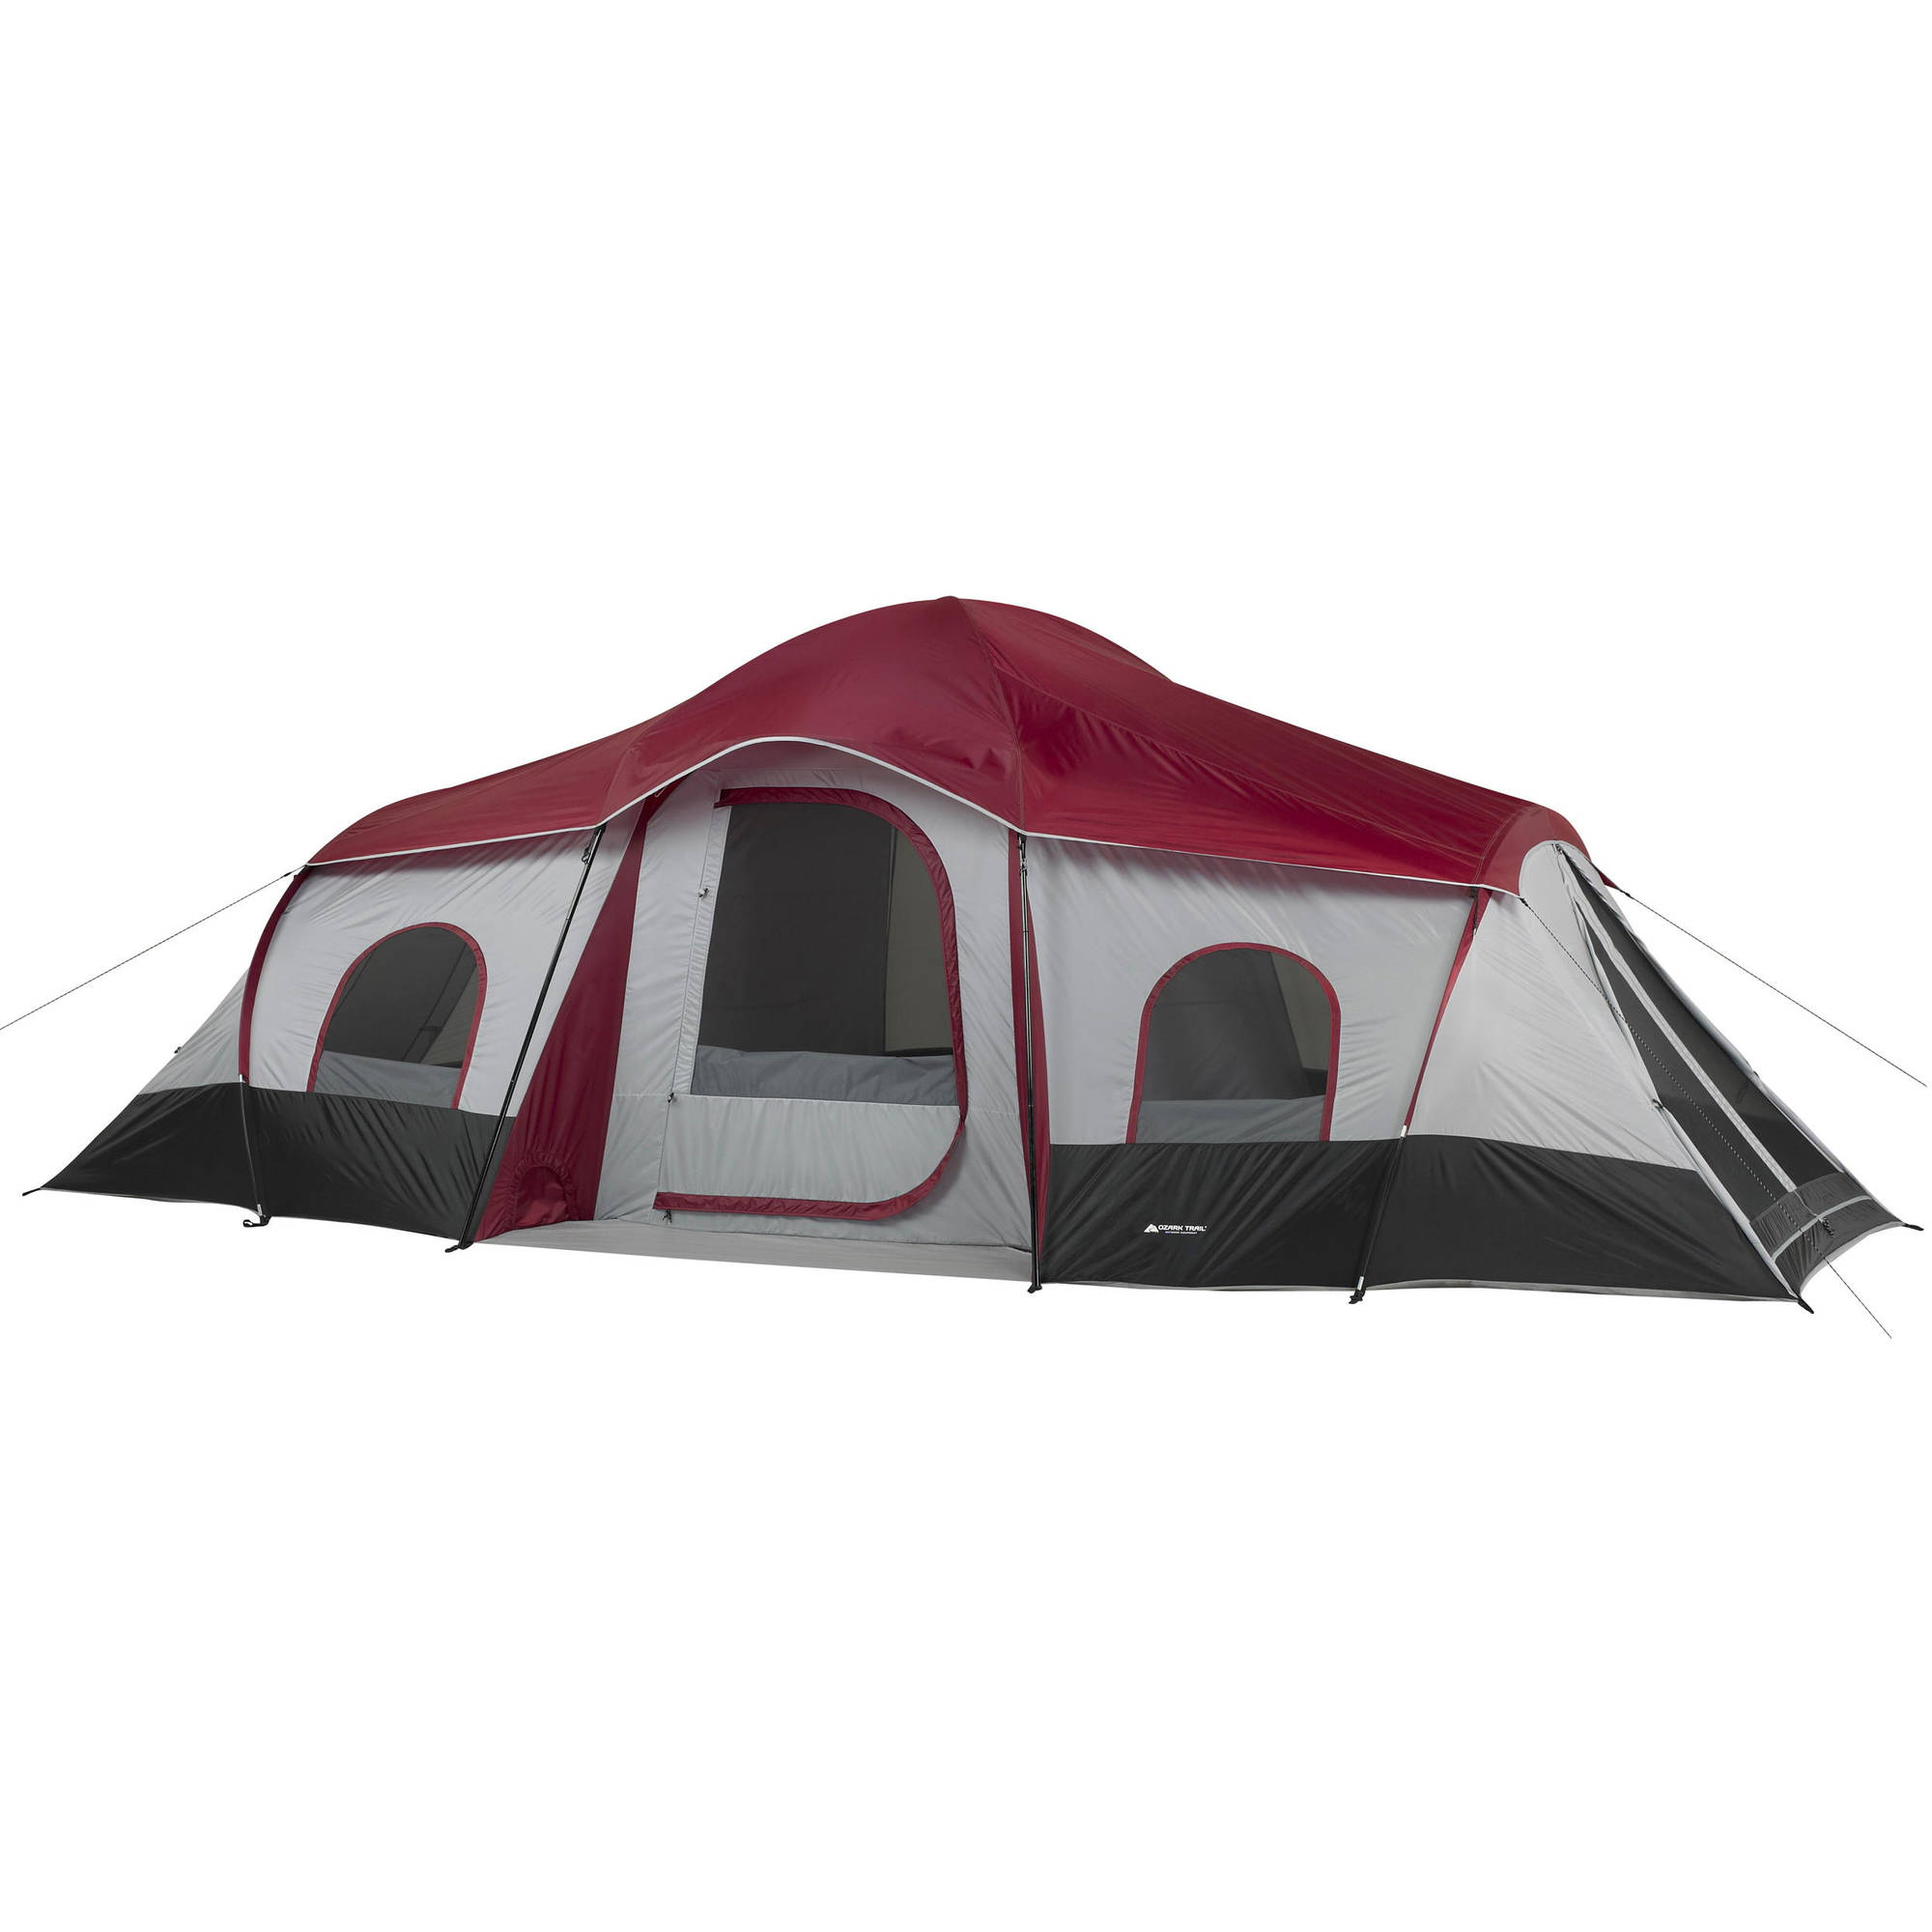 Ozark Trail 10-Person 3-Room Cabin Tent  sc 1 st  Walmart : ozark tent parts - memphite.com